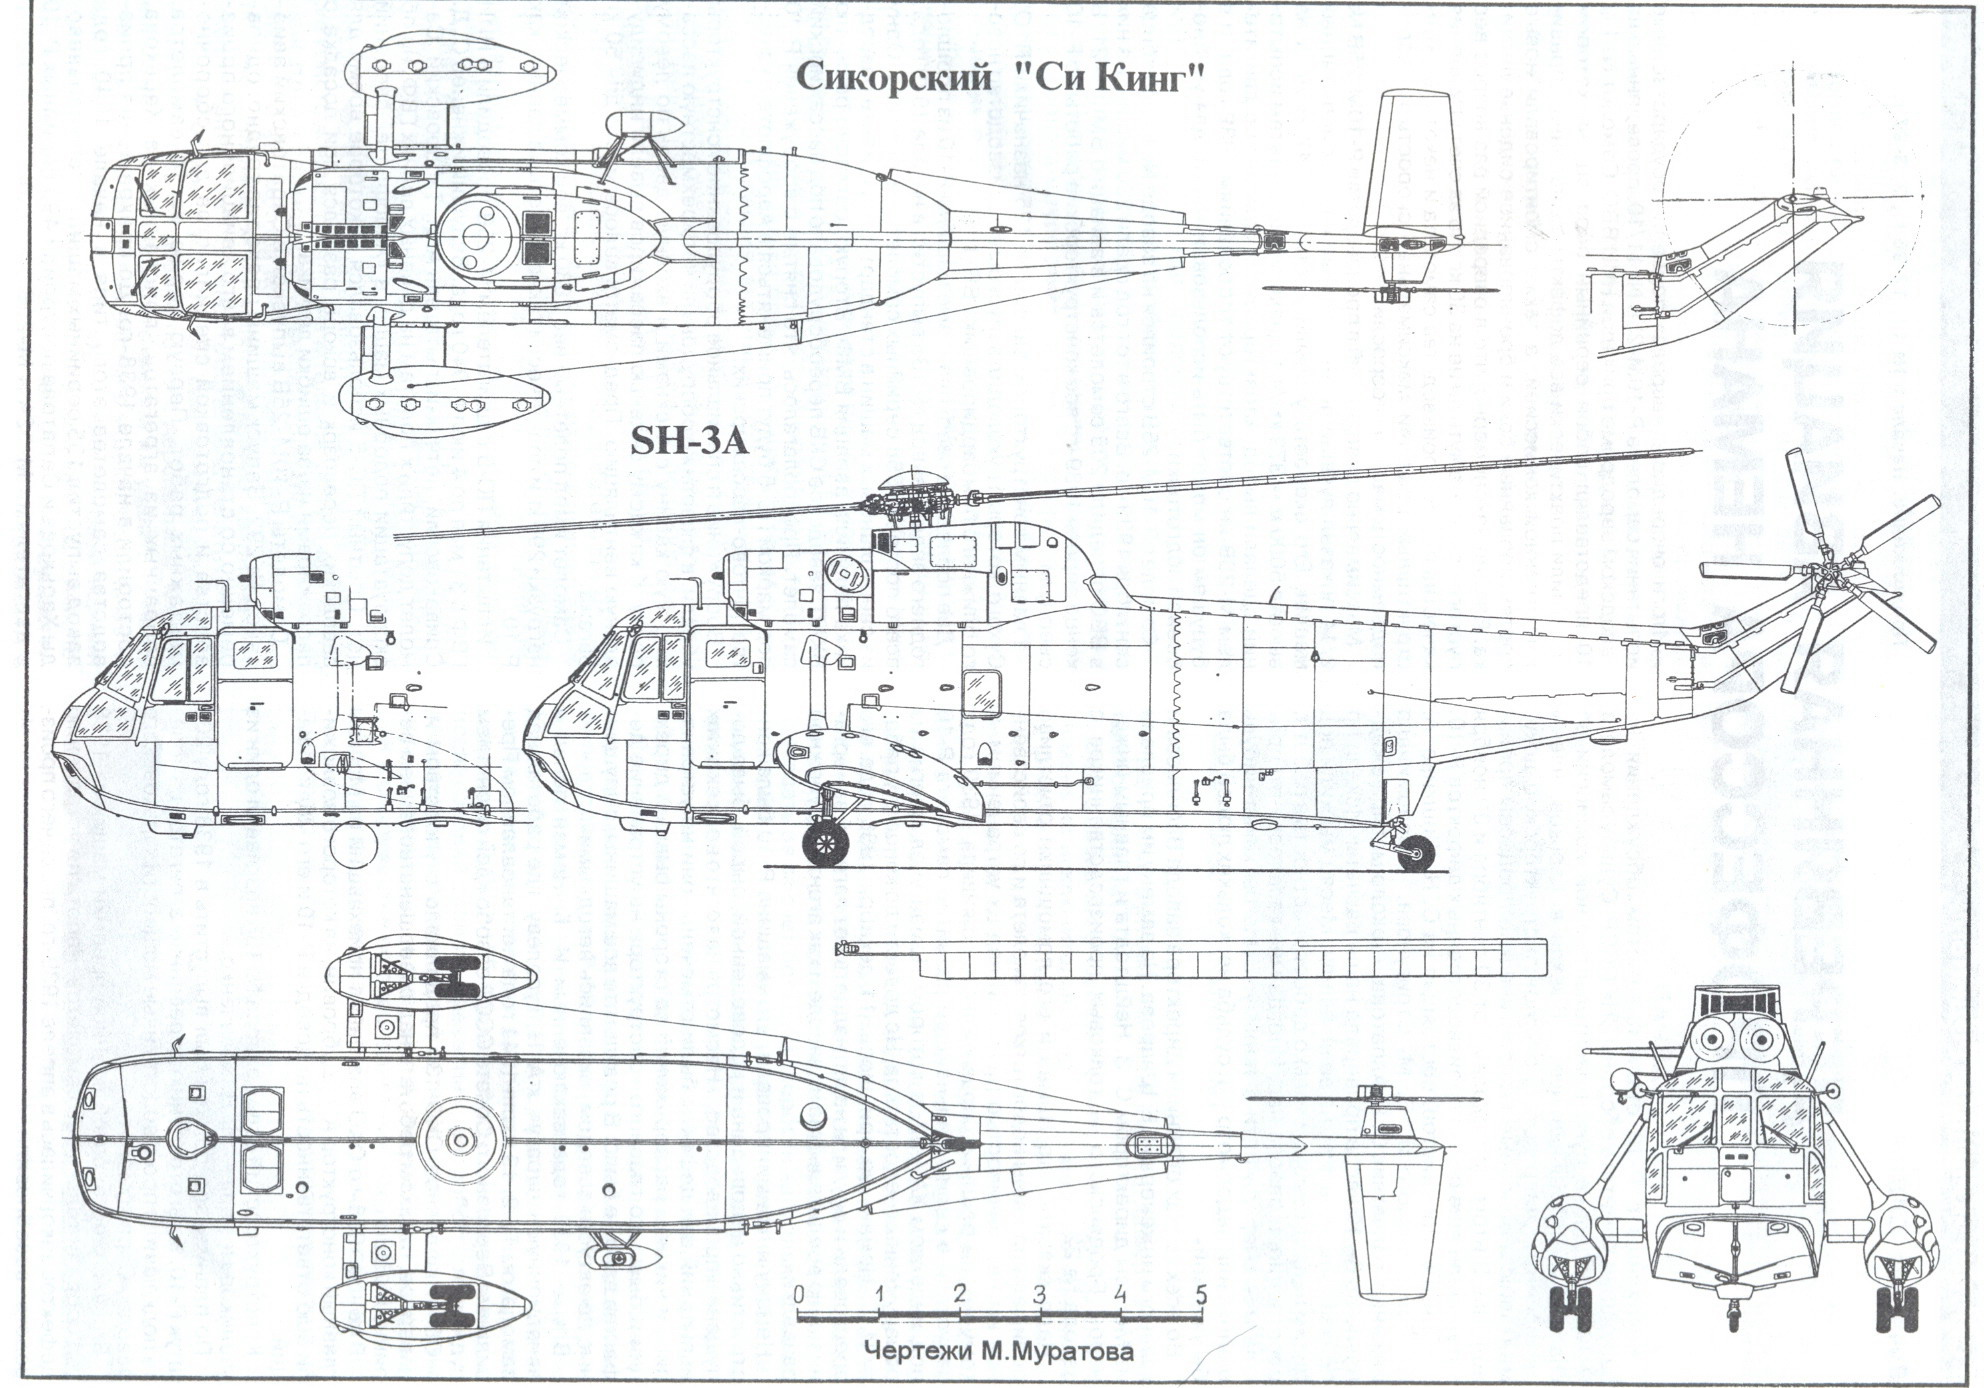 Sikorsky SH-3 Sea King blueprint